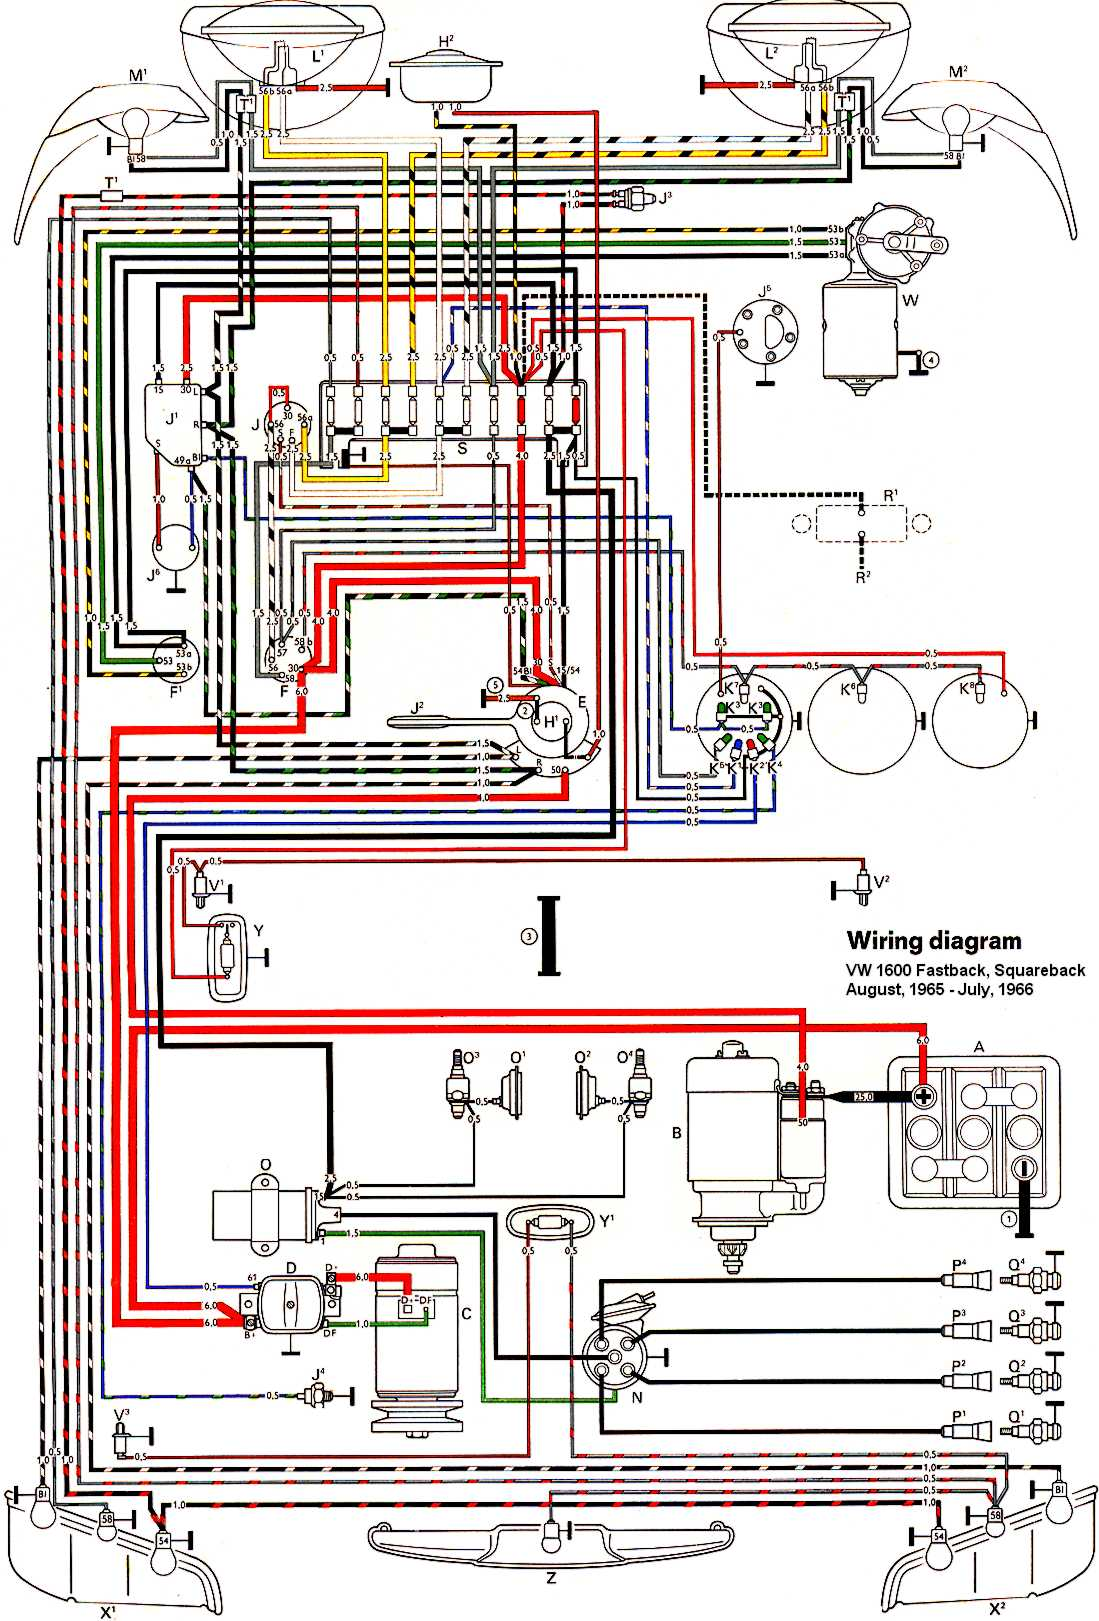 type3_1600_66 2004 vw beetle wiring diagram 2004 vw beetle transmission problems 66 vw bug wiring diagram at webbmarketing.co